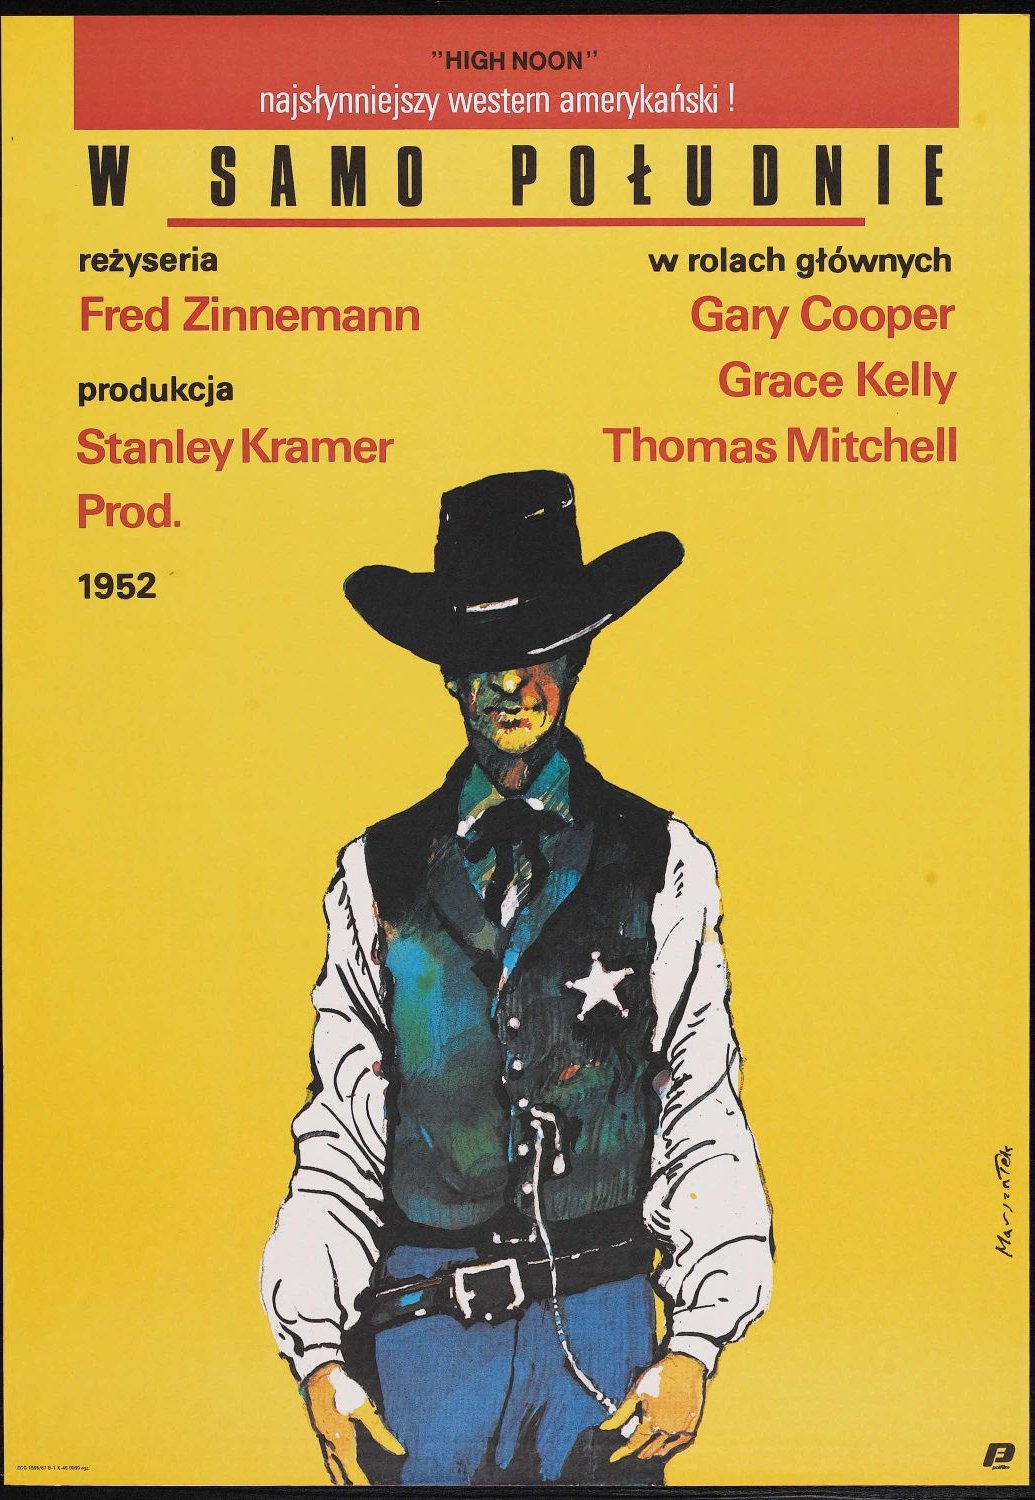 """ìhigh noonî (1952) by fred zinnemann essay """"high noon"""" (1952) by fred zinnemann essay sample soon after its inception the genre of film became perhaps the most dynamically developing form of modern popular art."""